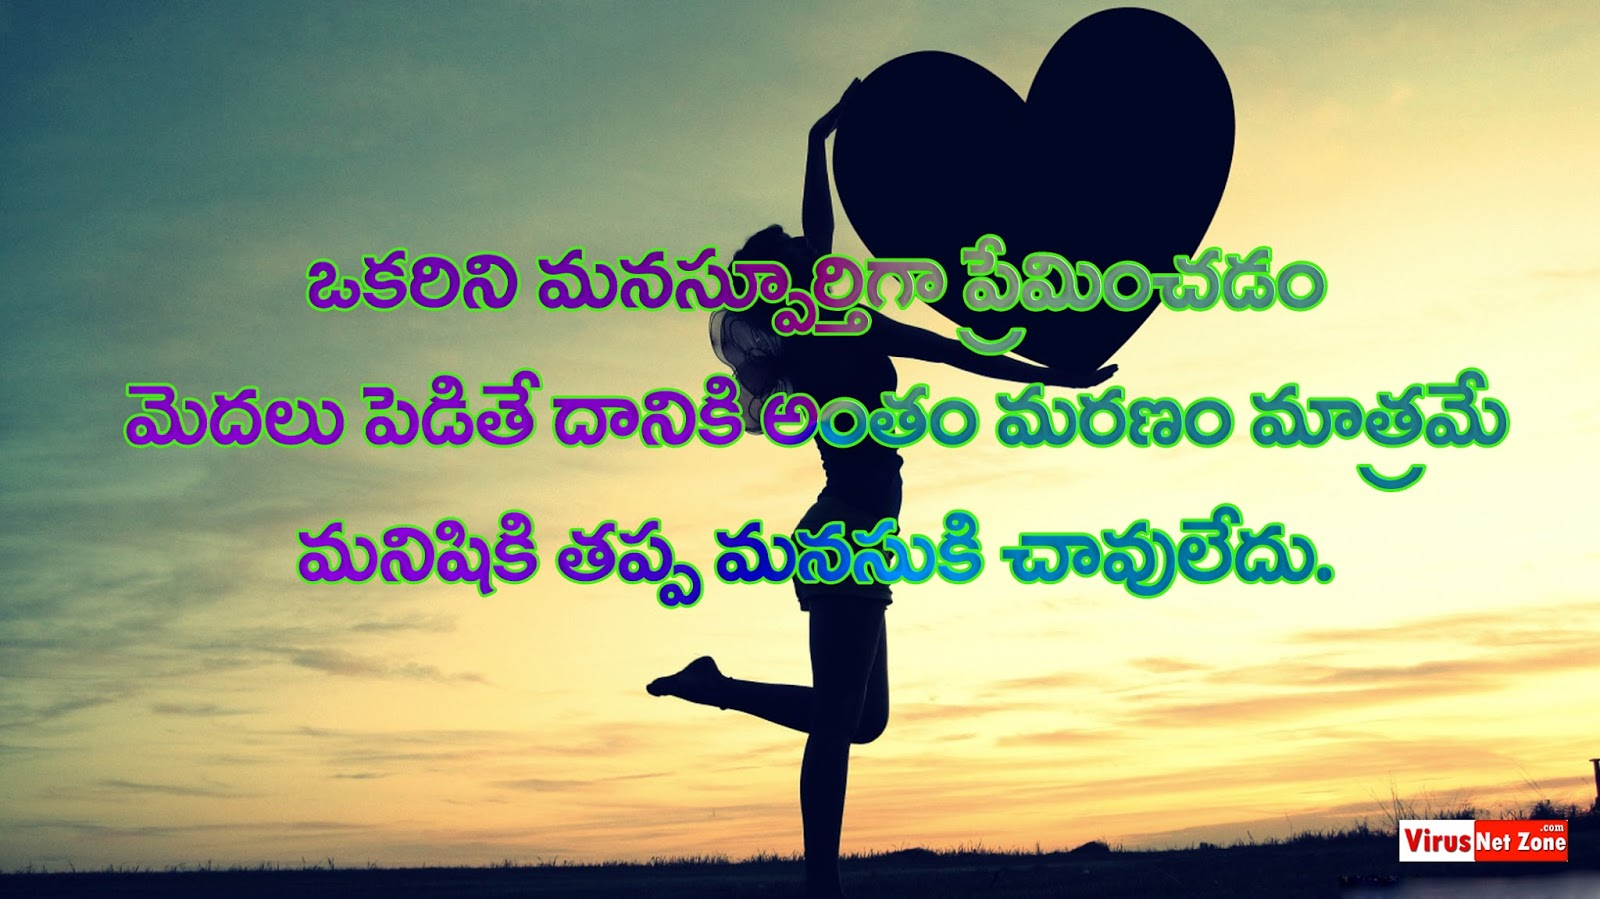 Real Love Quotes Real Love Quotes Images In Teluguతెలుగు ప్రేమ